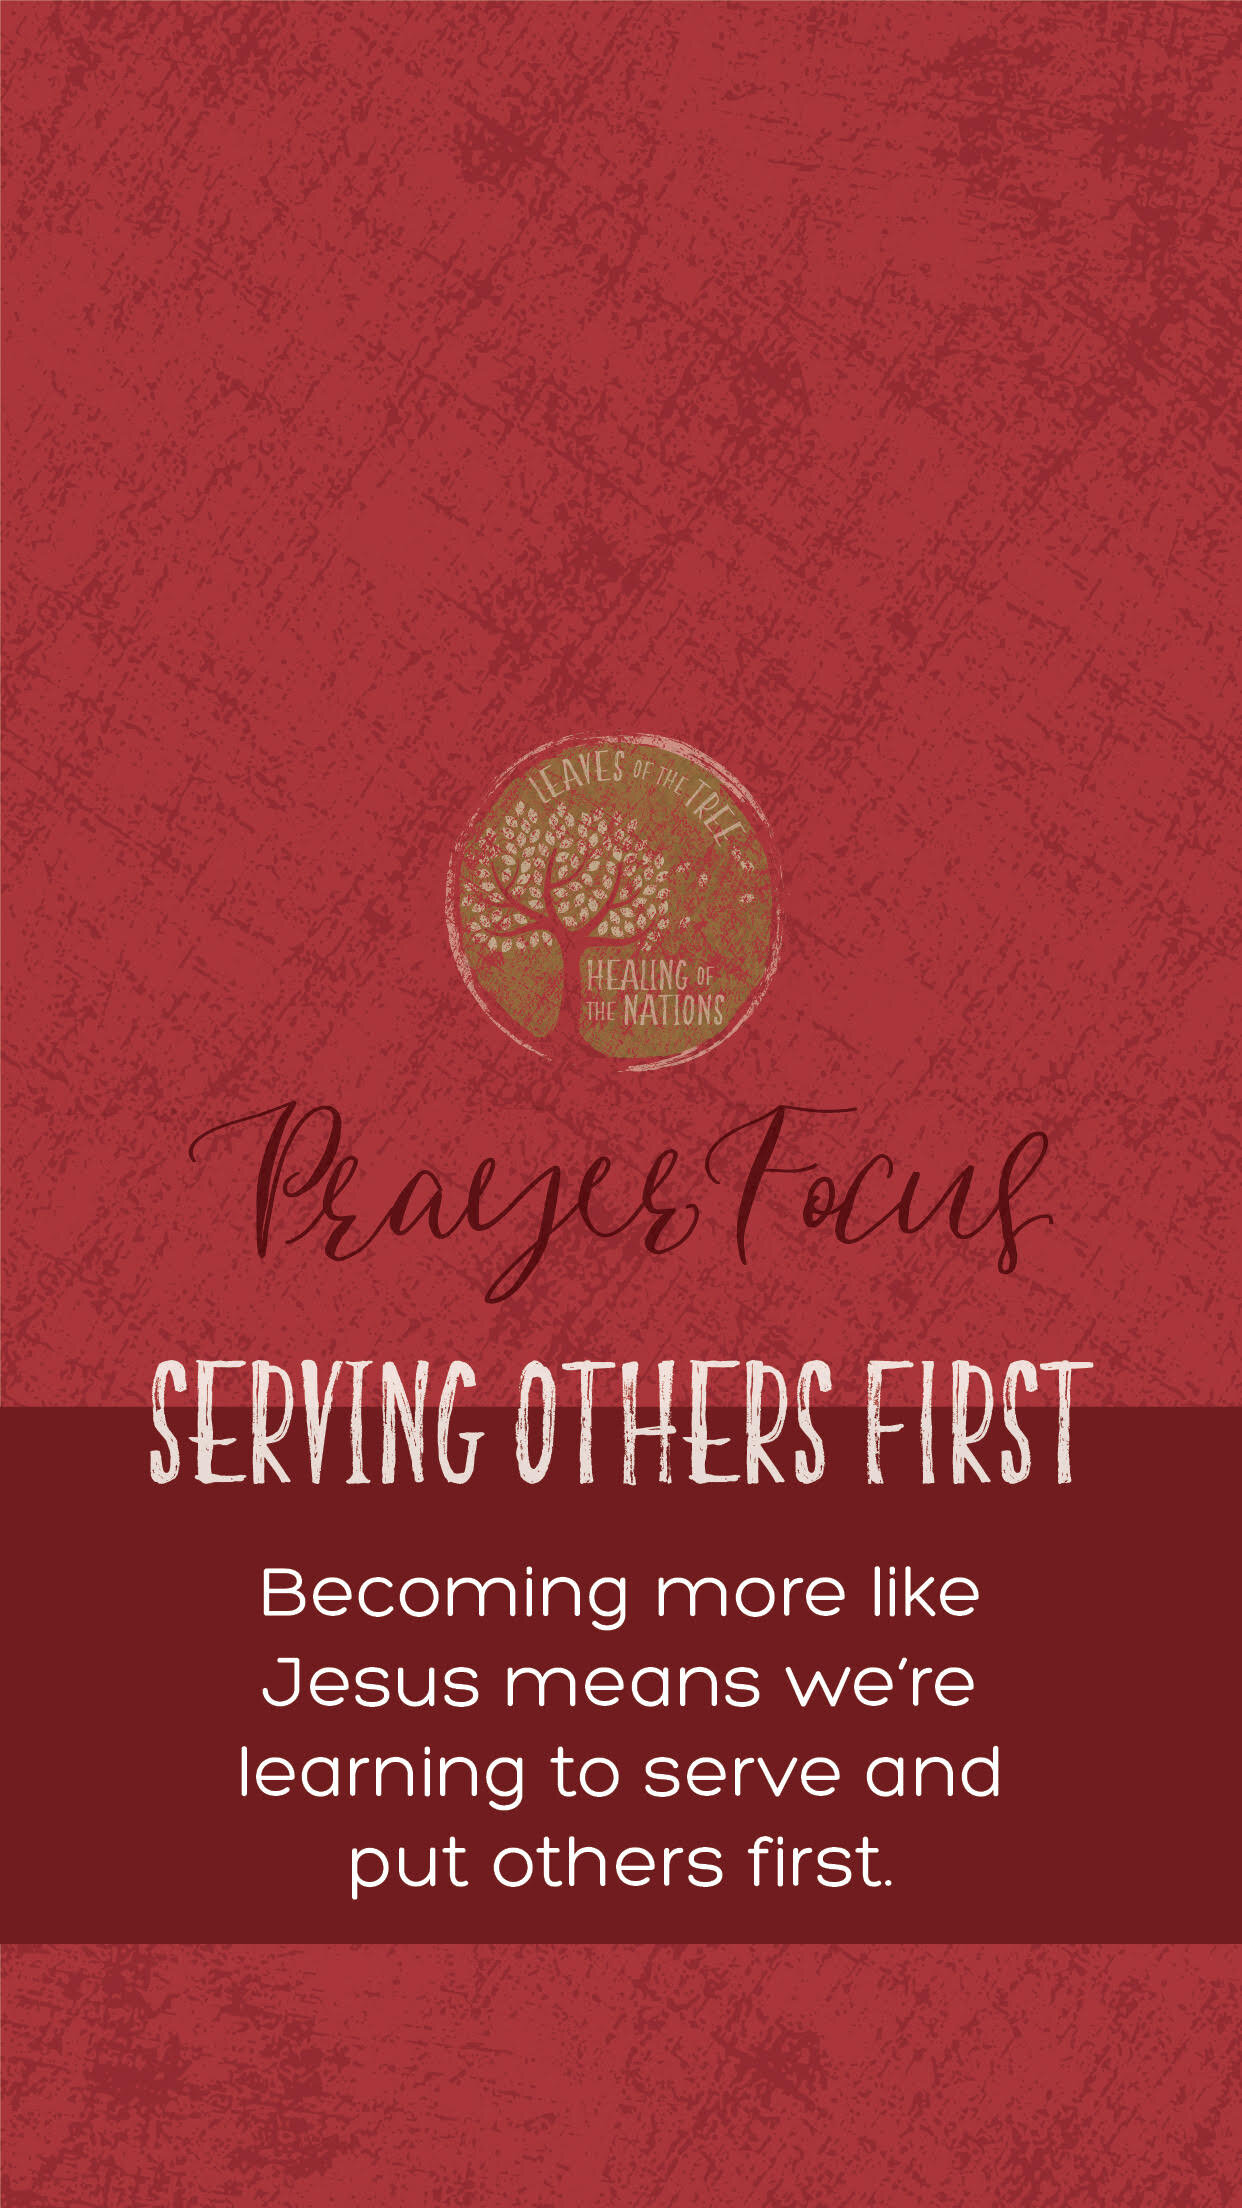 Serving others first 2.jpg